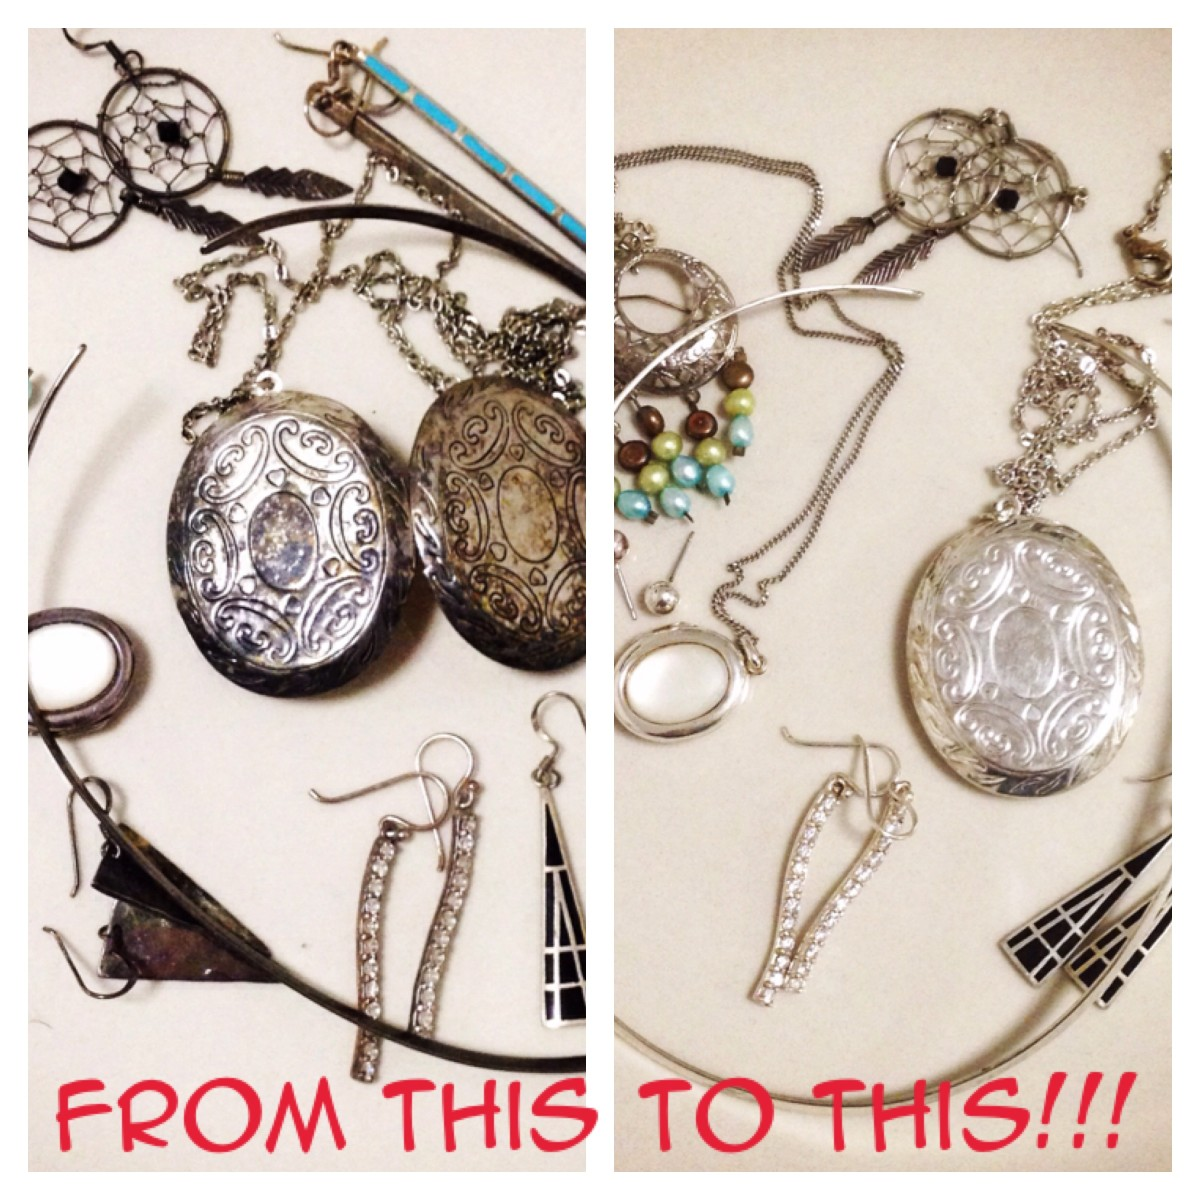 How to easily clean tarnished silver jewelry with pantry items!